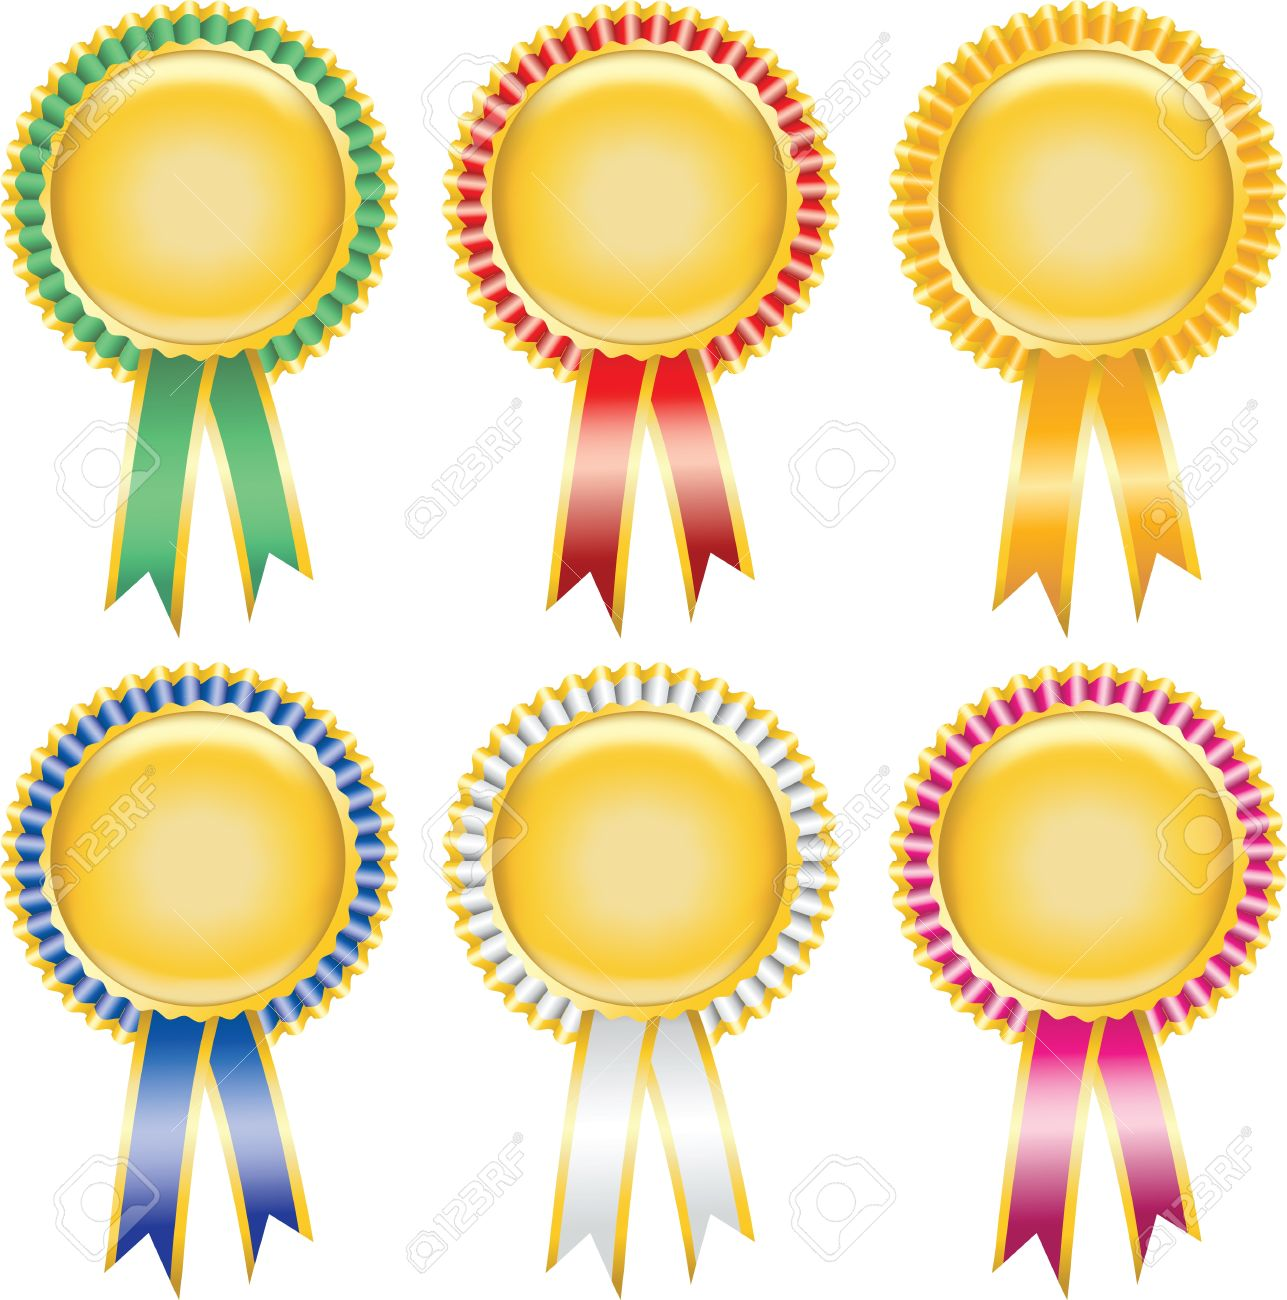 Award ribbon template image collections template design ideas award ribbon template gallery template design ideas blank award ribbon template lektonfo blank award ribbon template maxwellsz